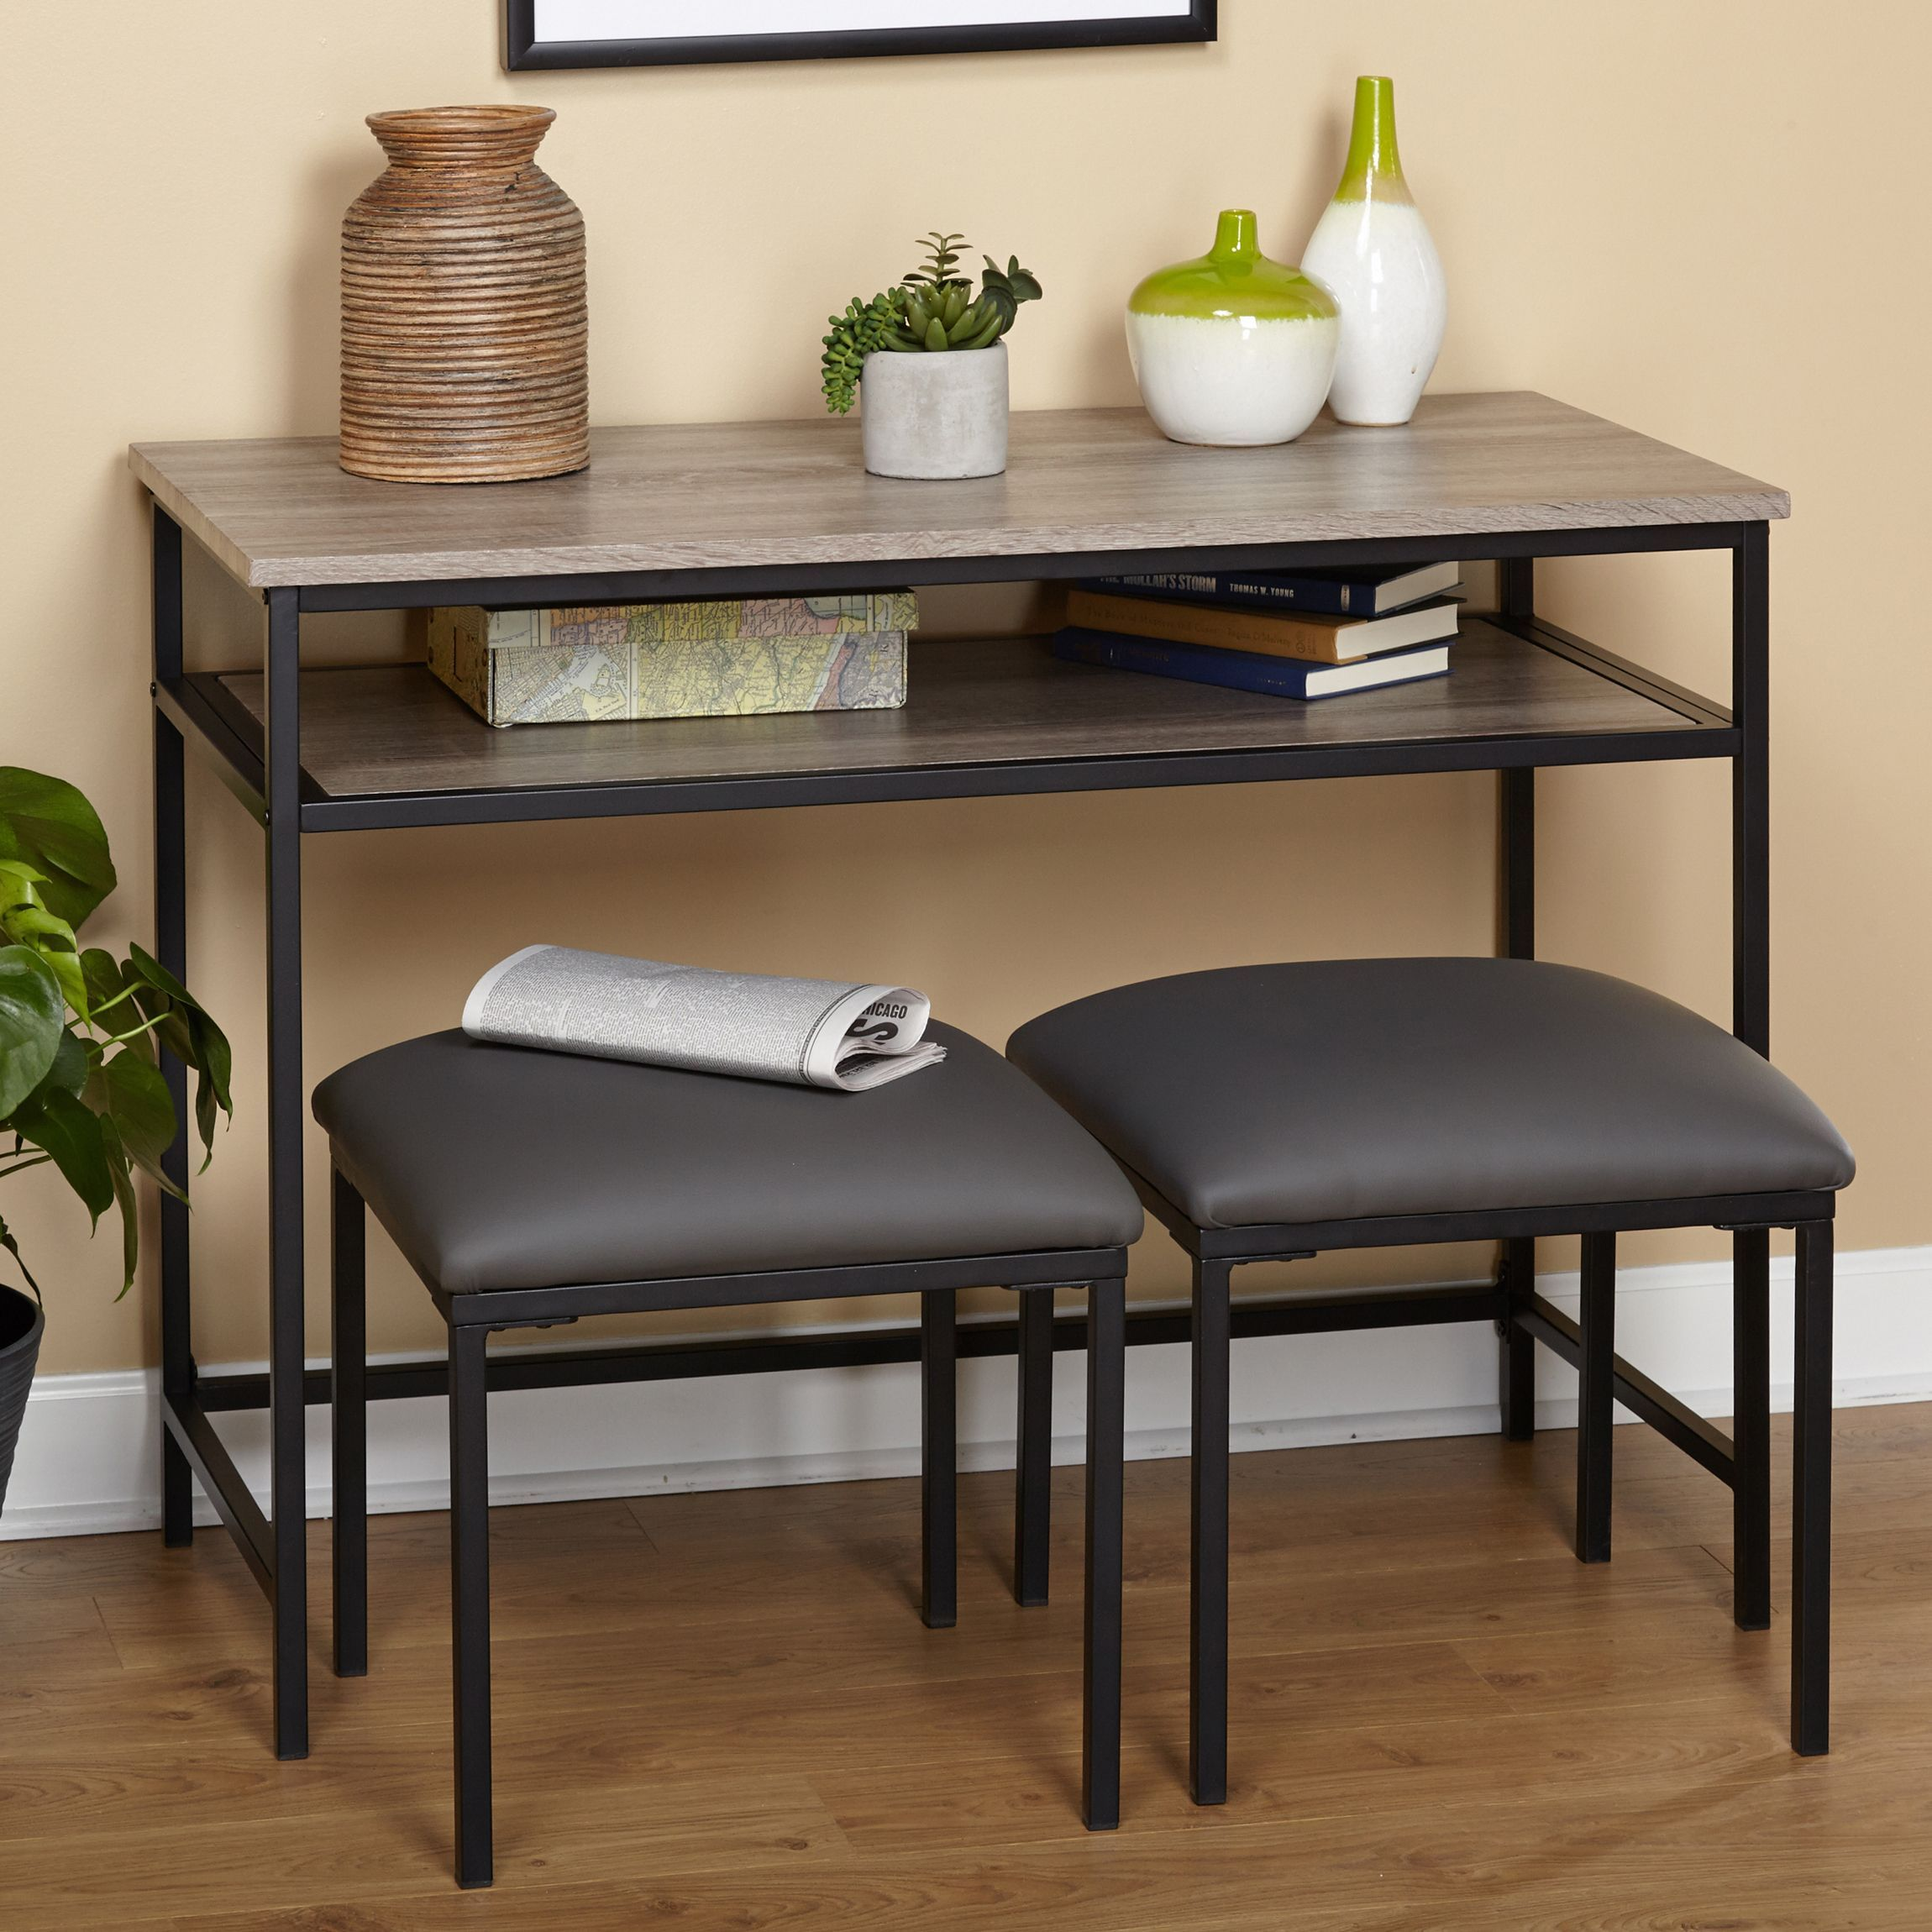 Update your living or office space with the seneca console table update your living or office space with the seneca console table and stool set it geotapseo Choice Image